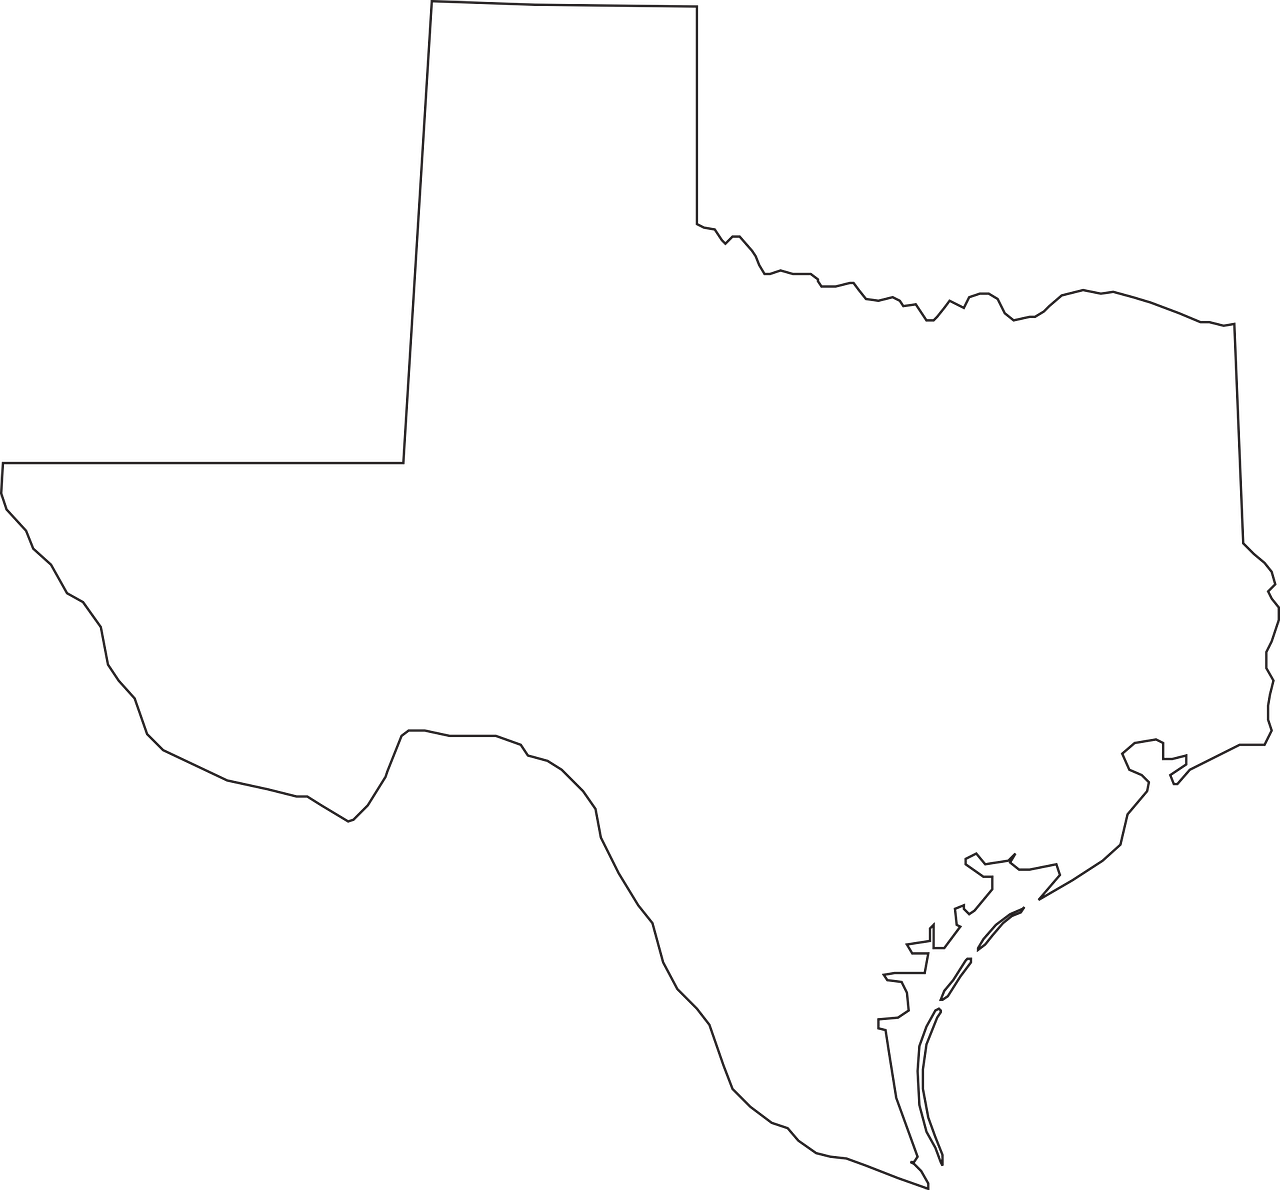 texas map geography free photo